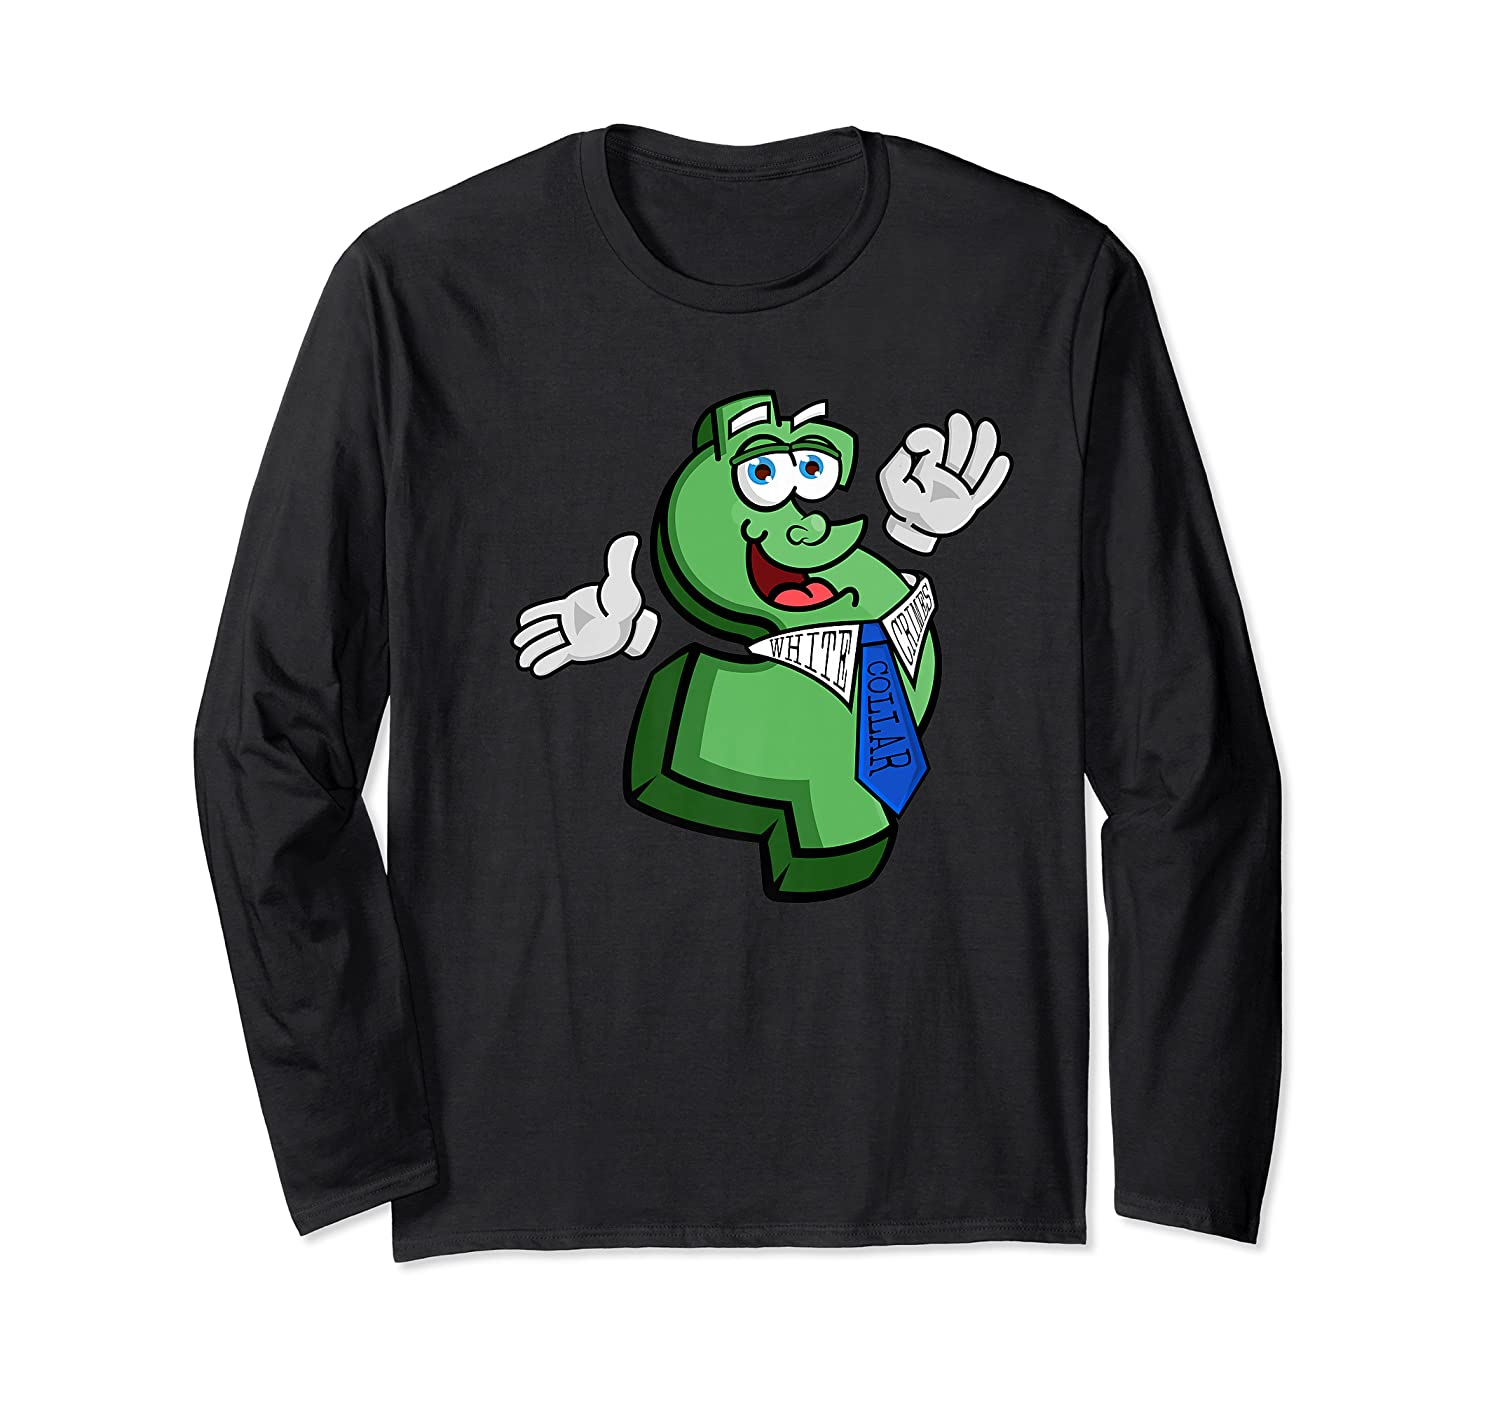 Funny T Shirts For Funny T Shirts For  Long Sleeve T-shirt